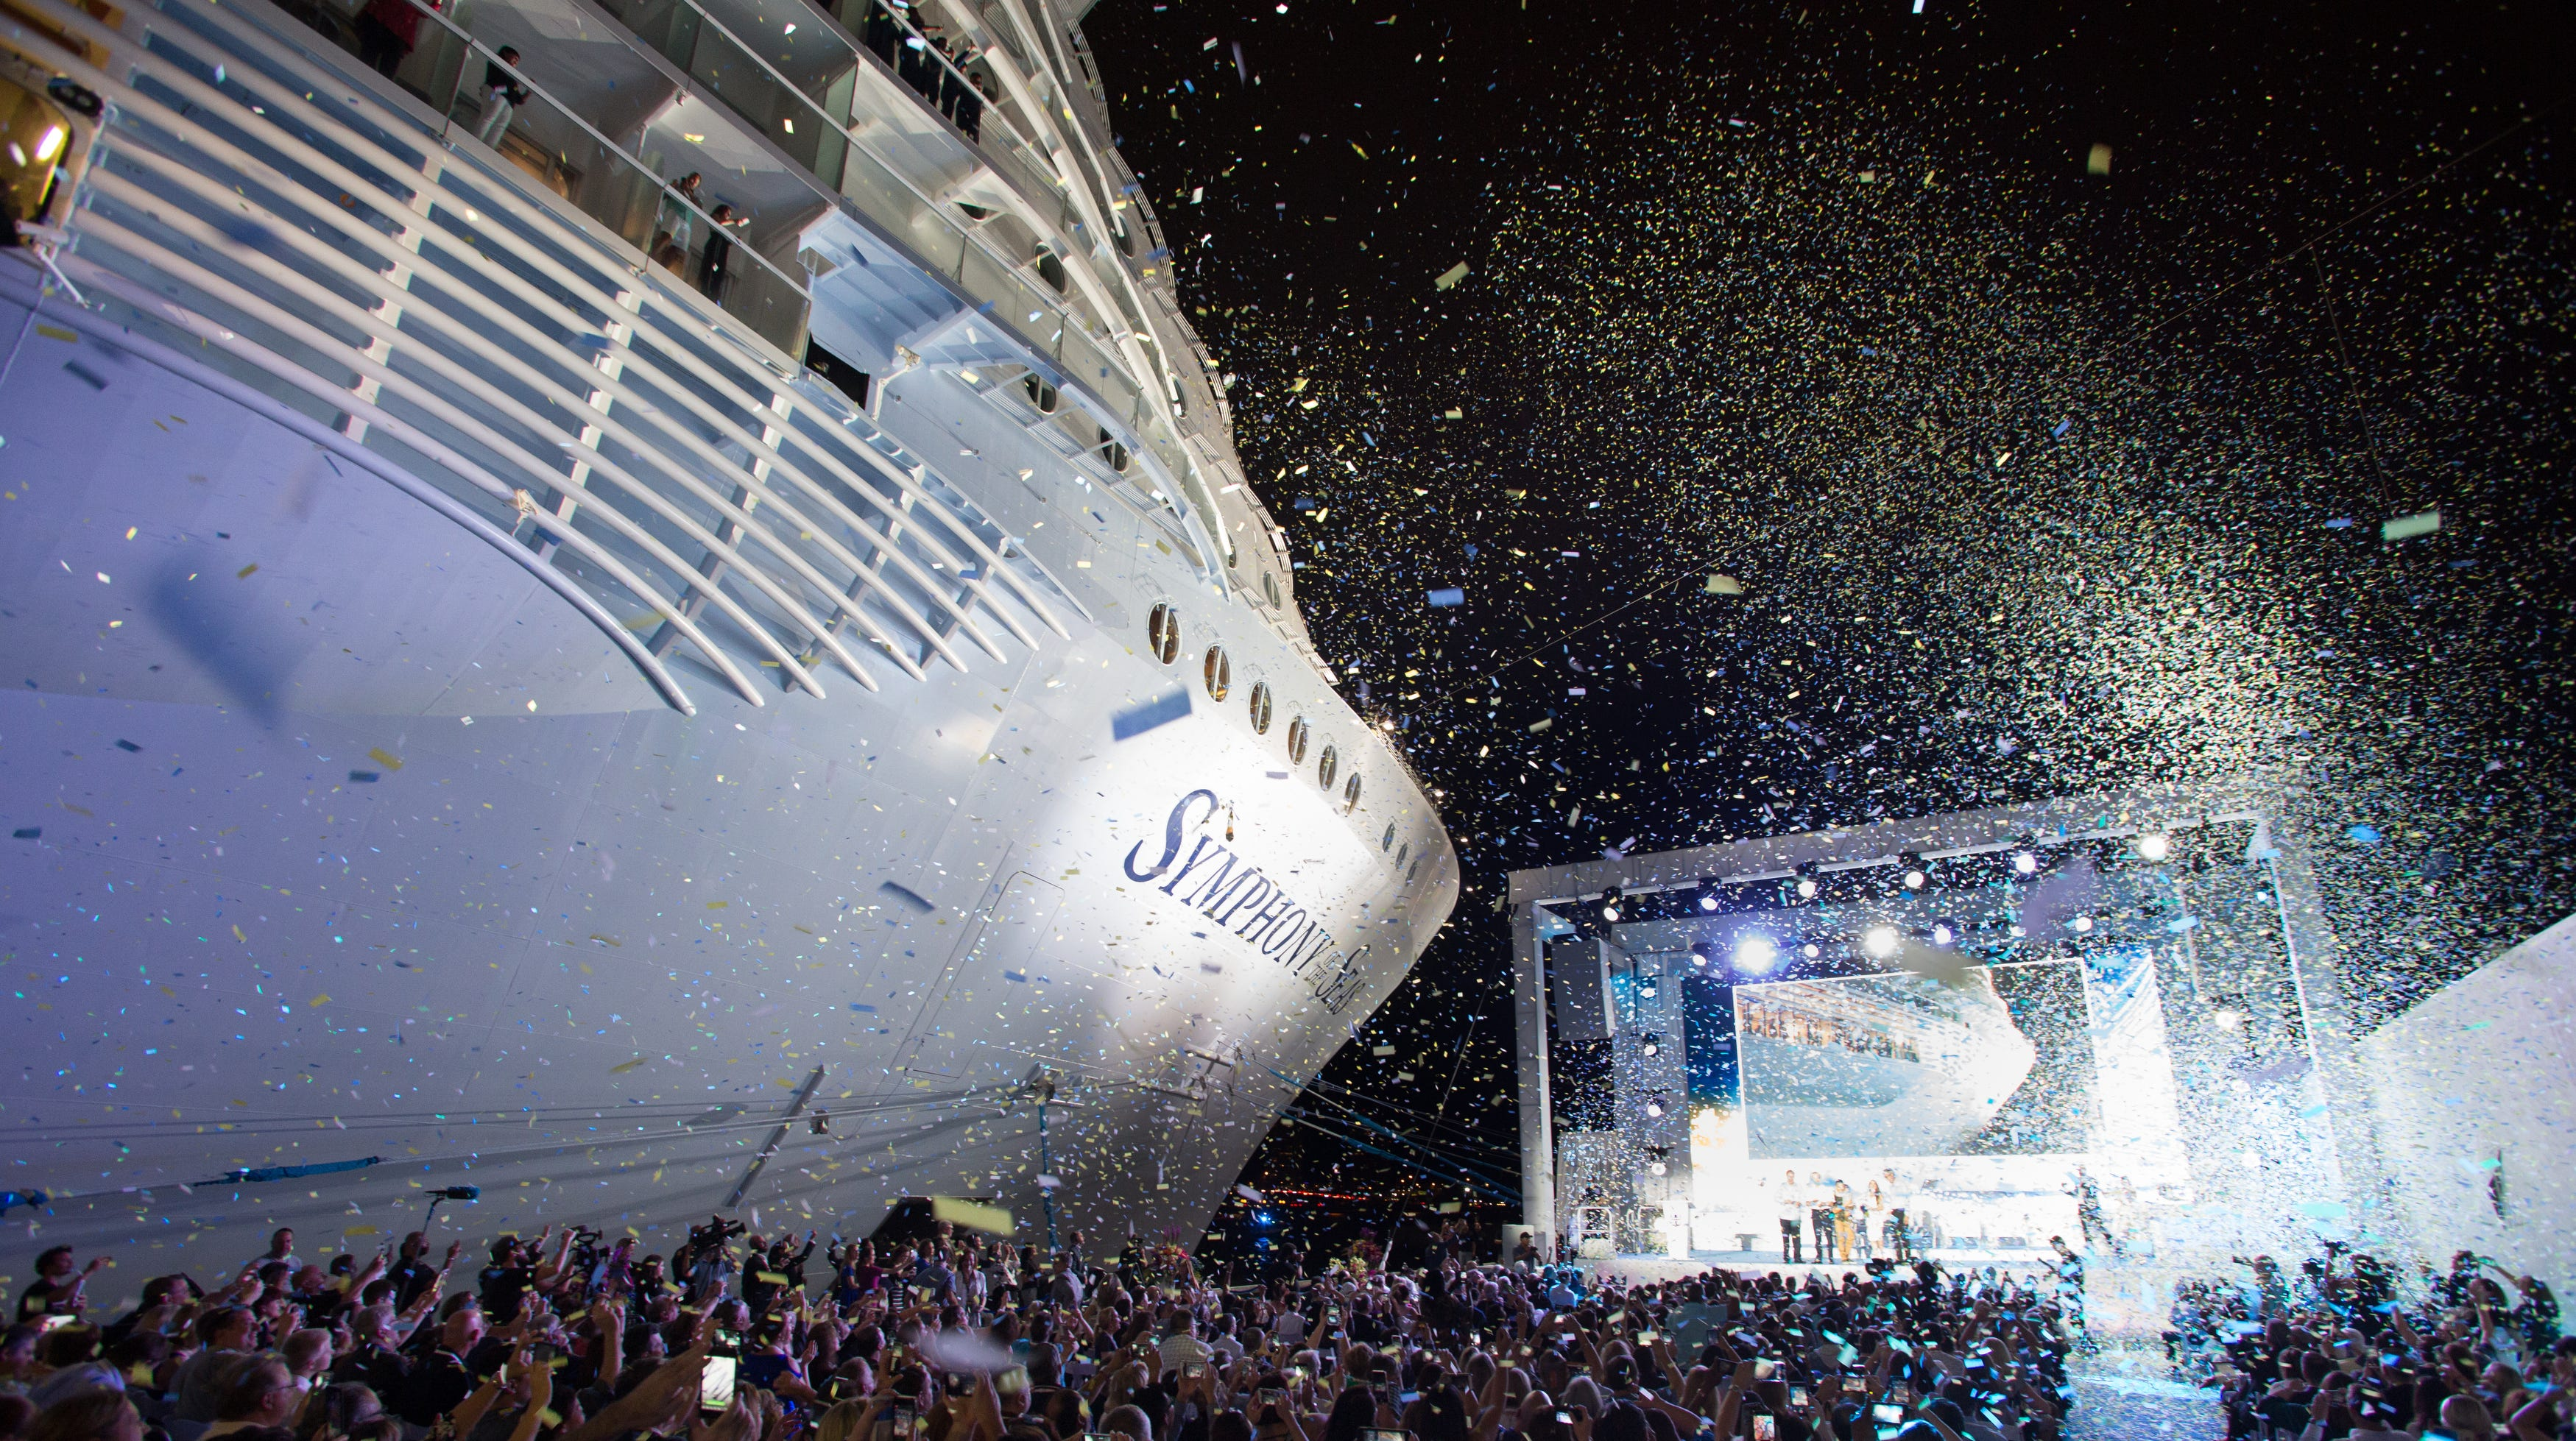 The new world's largest cruise ship, Royal Caribbean's Symphony of the Seas, was christened Nov. 15 in Miami.